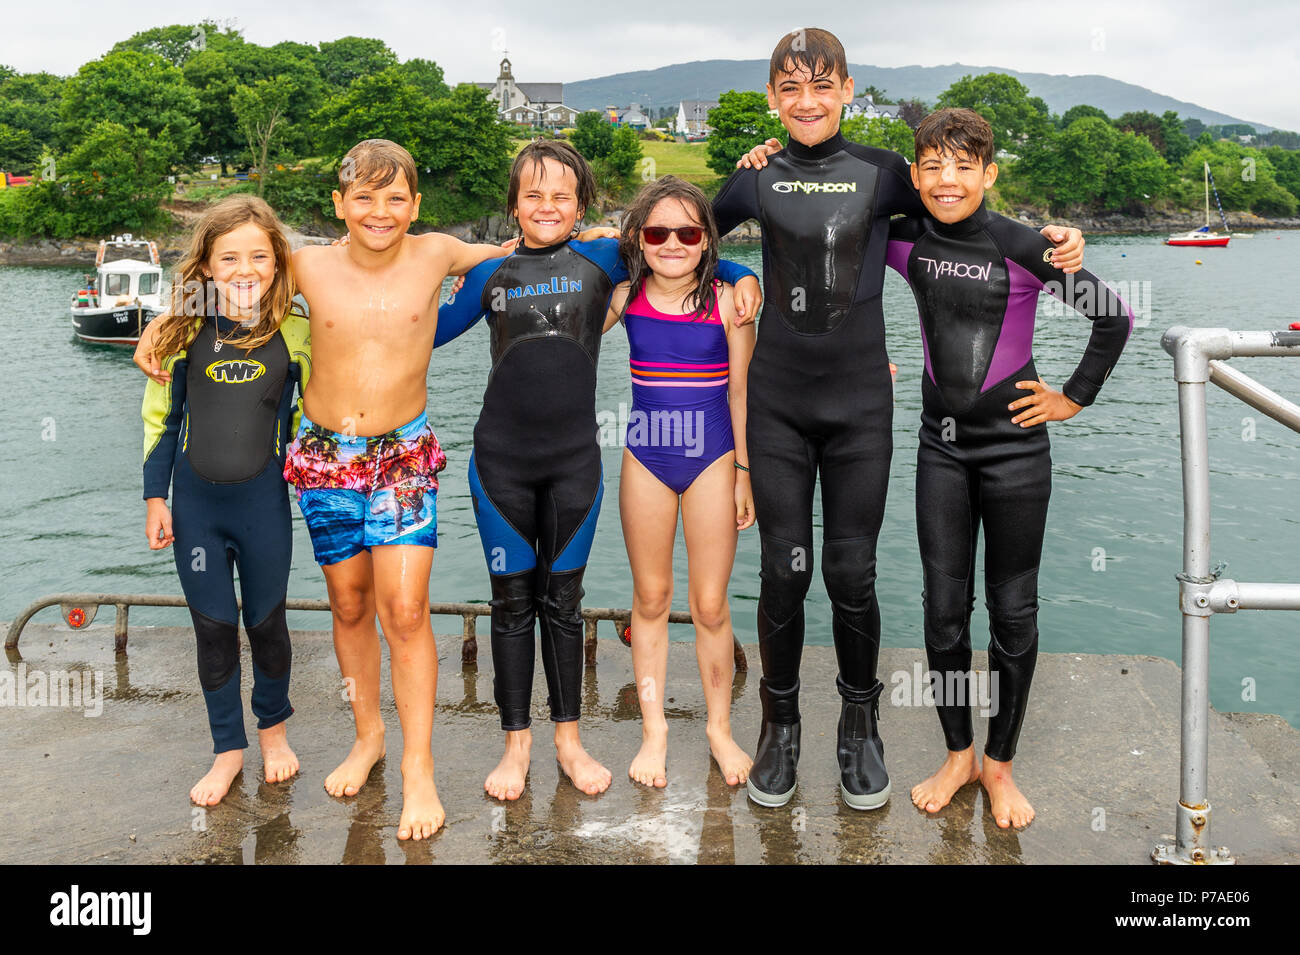 schull-west-cork-ireland-a-group-of-children-take-the-chance-to-jump-off-schull-pier-into-the-water-l-r-aoibhinn-and-oran-reilly-cork-oliver-and-ati-toro-colombia-conall-reilly-cork-and-alex-odonnell-cork-after-a-cool-and-overcast-start-to-the-day-temperatures-are-beginning-to-rise-with-highs-of-around-30-celsius-expected-over-the-weekend-and-into-next-week-credit-andy-gibsonalamy-live-news-P7AE06.jpg